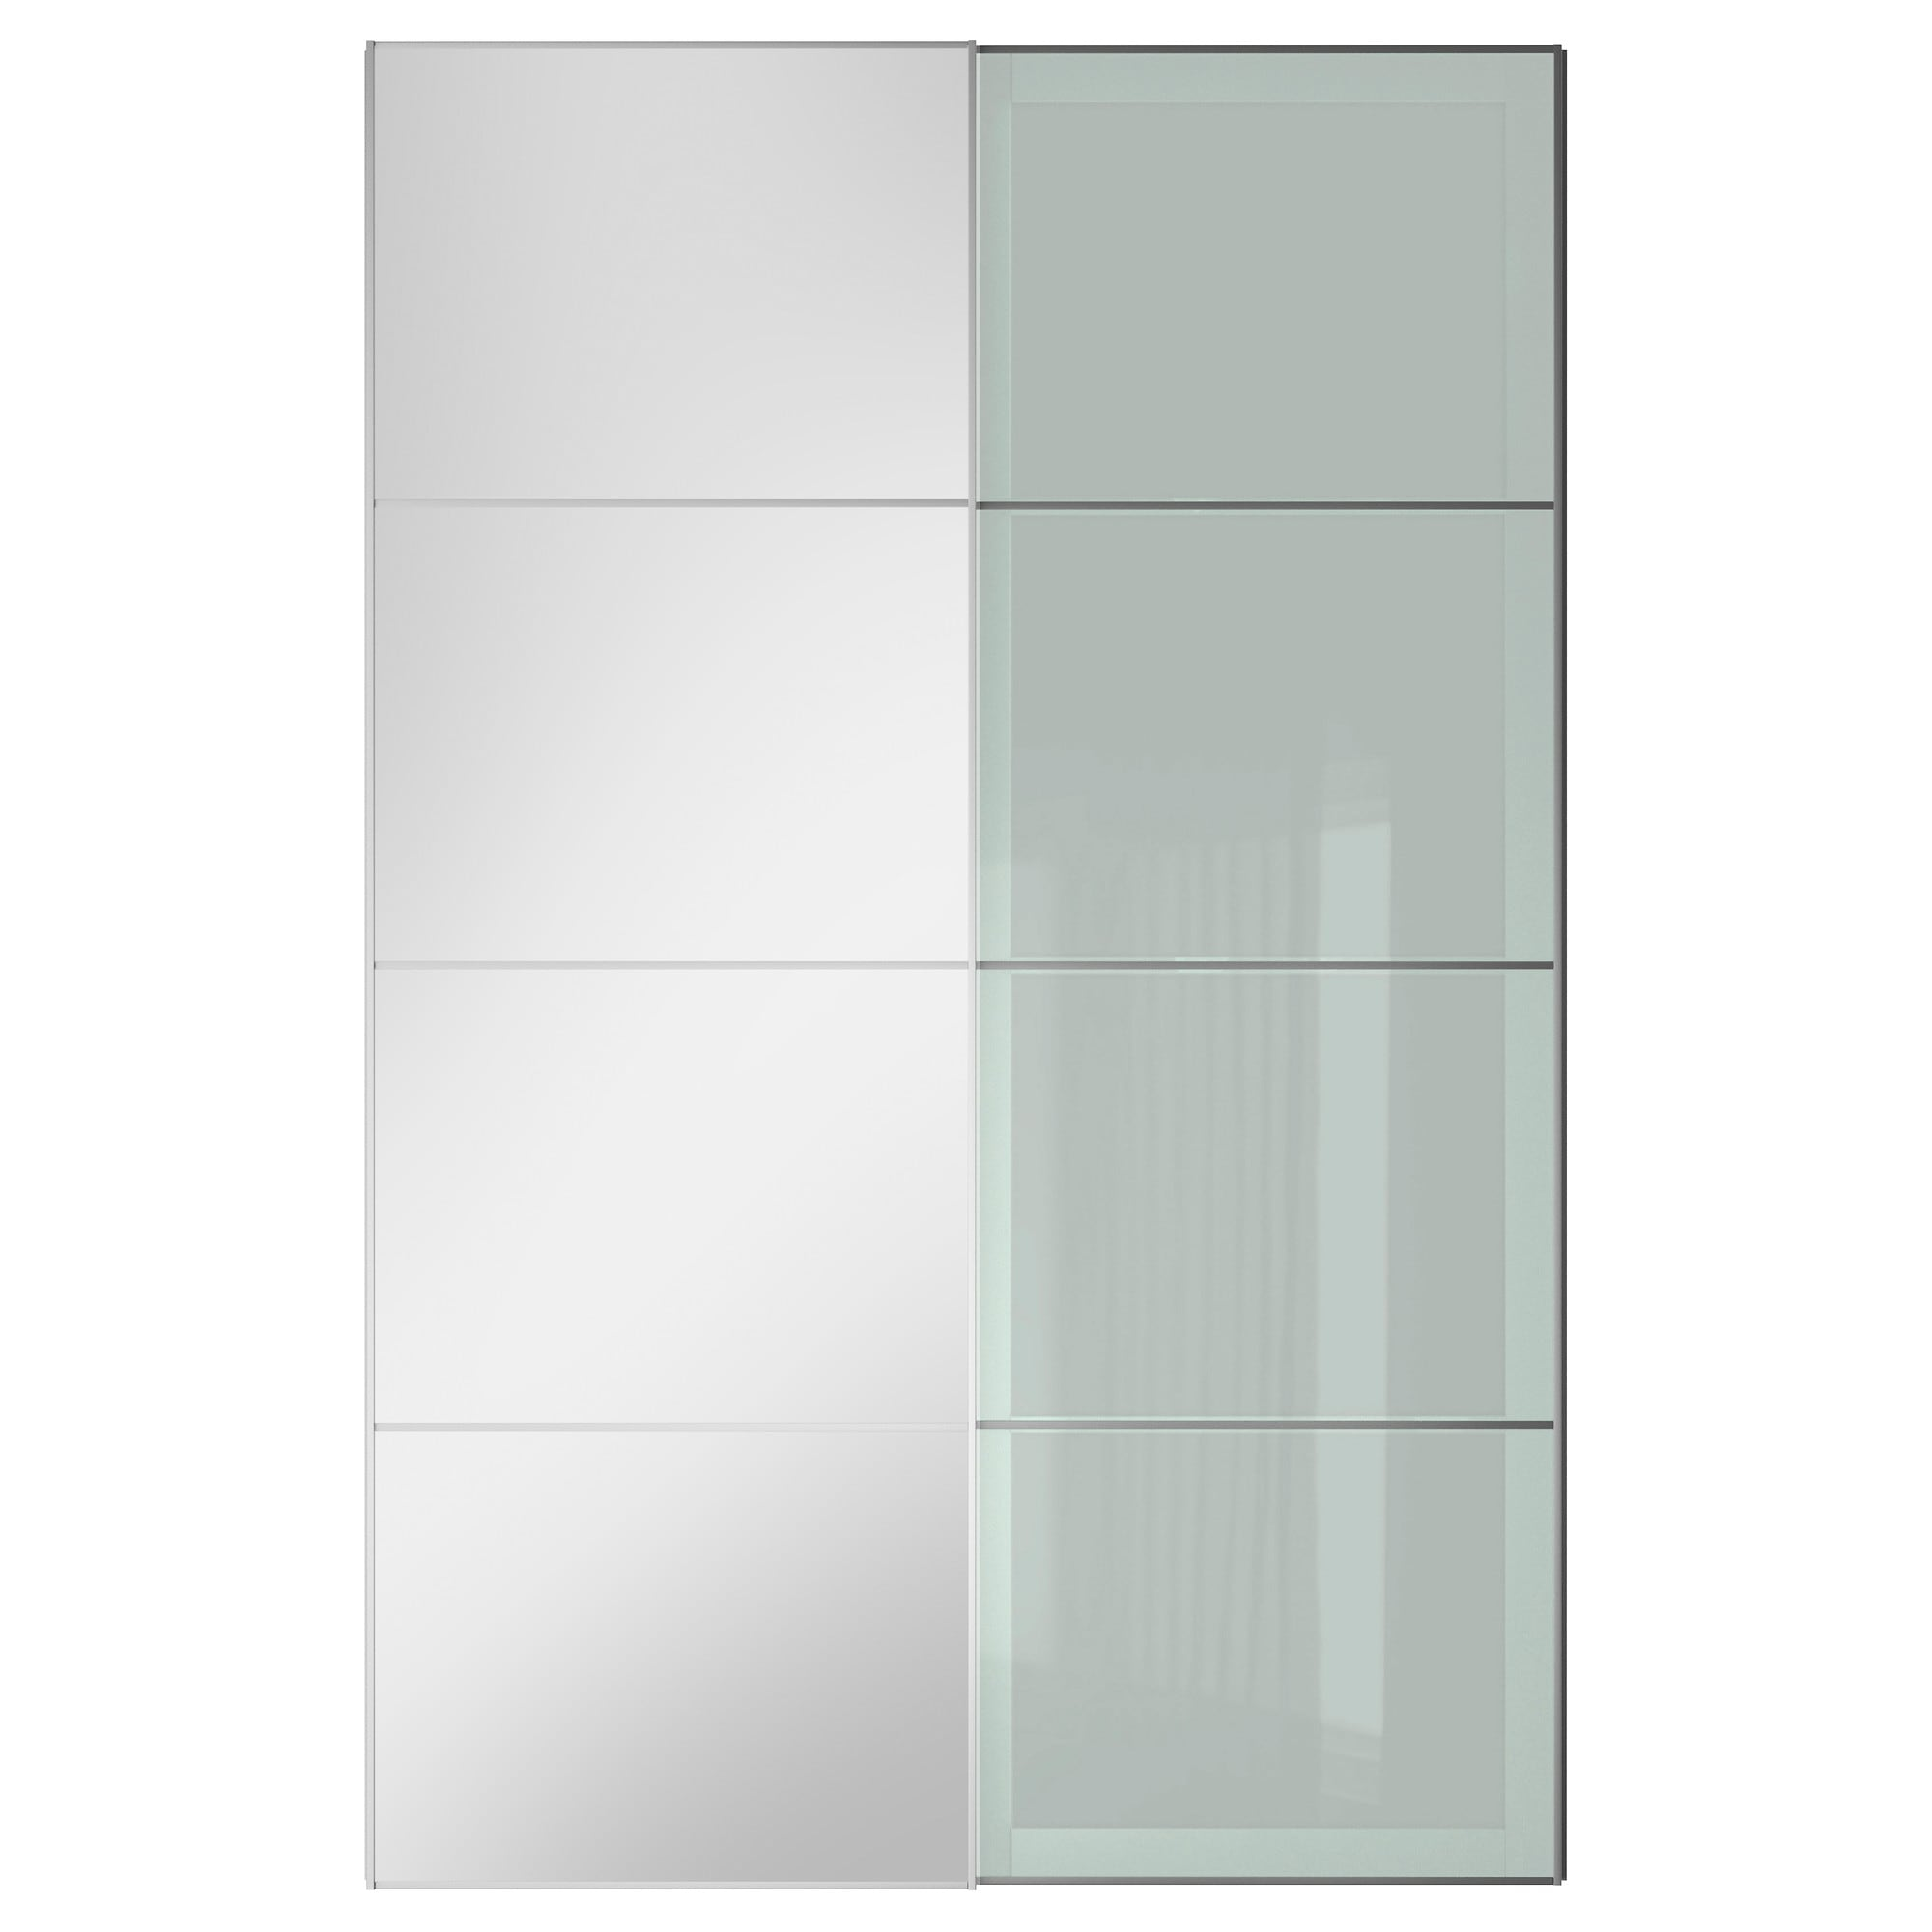 3 panel mirror sliding closet doors - Auli Sekken Pair Of Sliding Doors Mirror Glass Frosted Glass Width 78